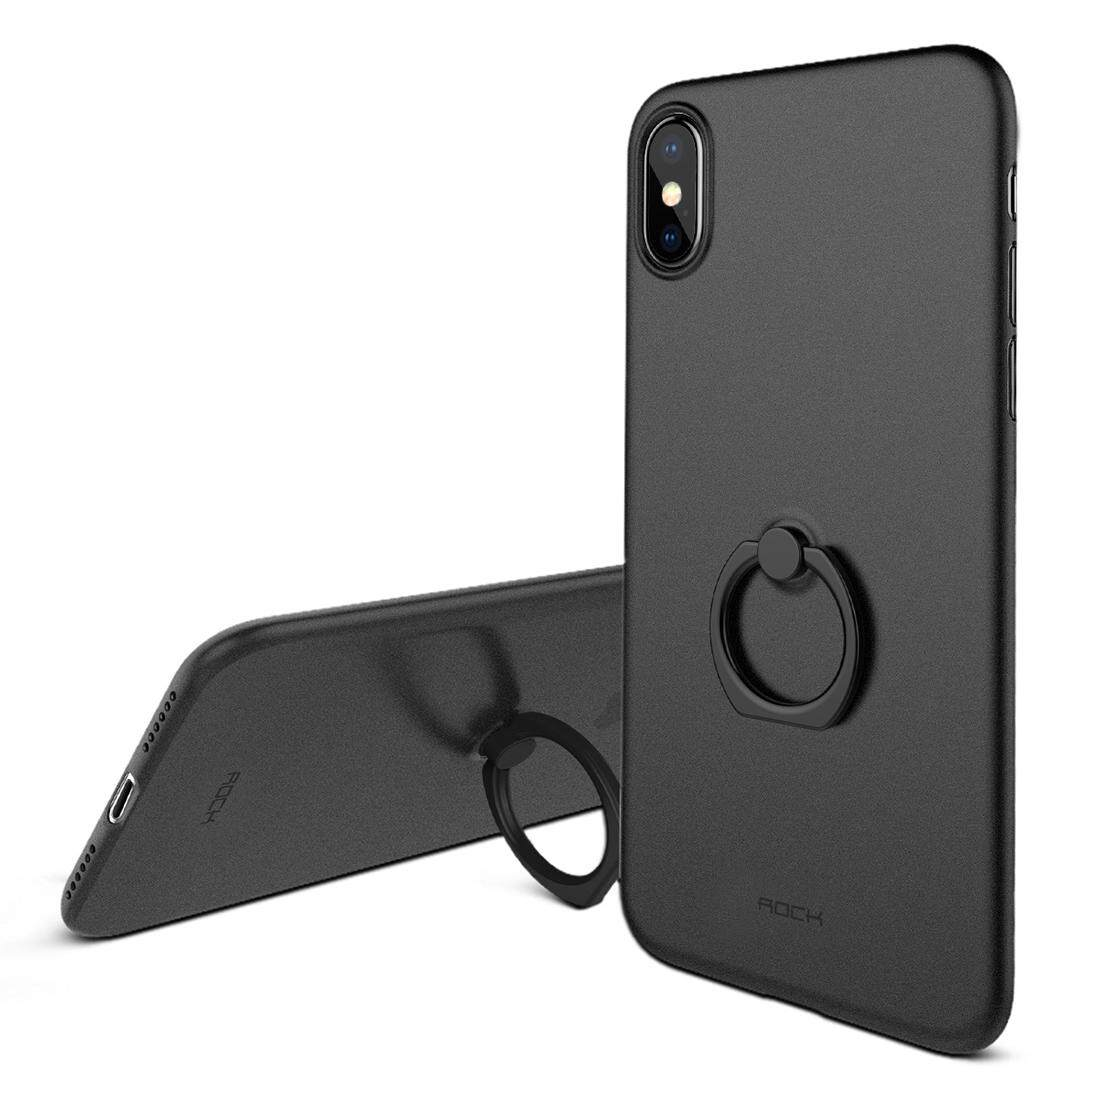 ROCK for iPhone X Ultra-thin PP Shockproof Protective Back Cover Case with Ring Holder